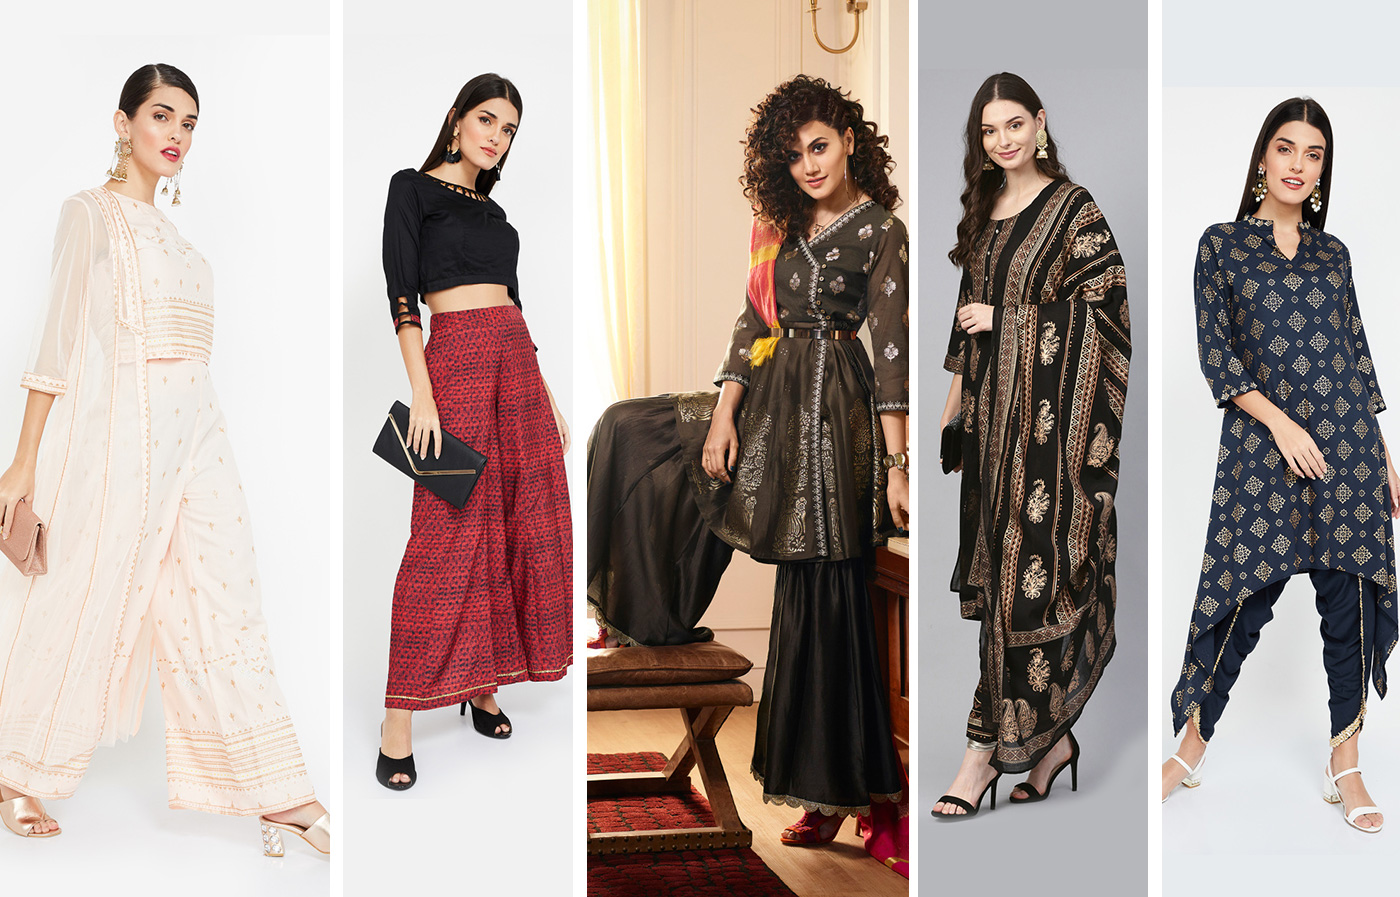 What-to-wear-to-an-Indian-wedding-circlemag